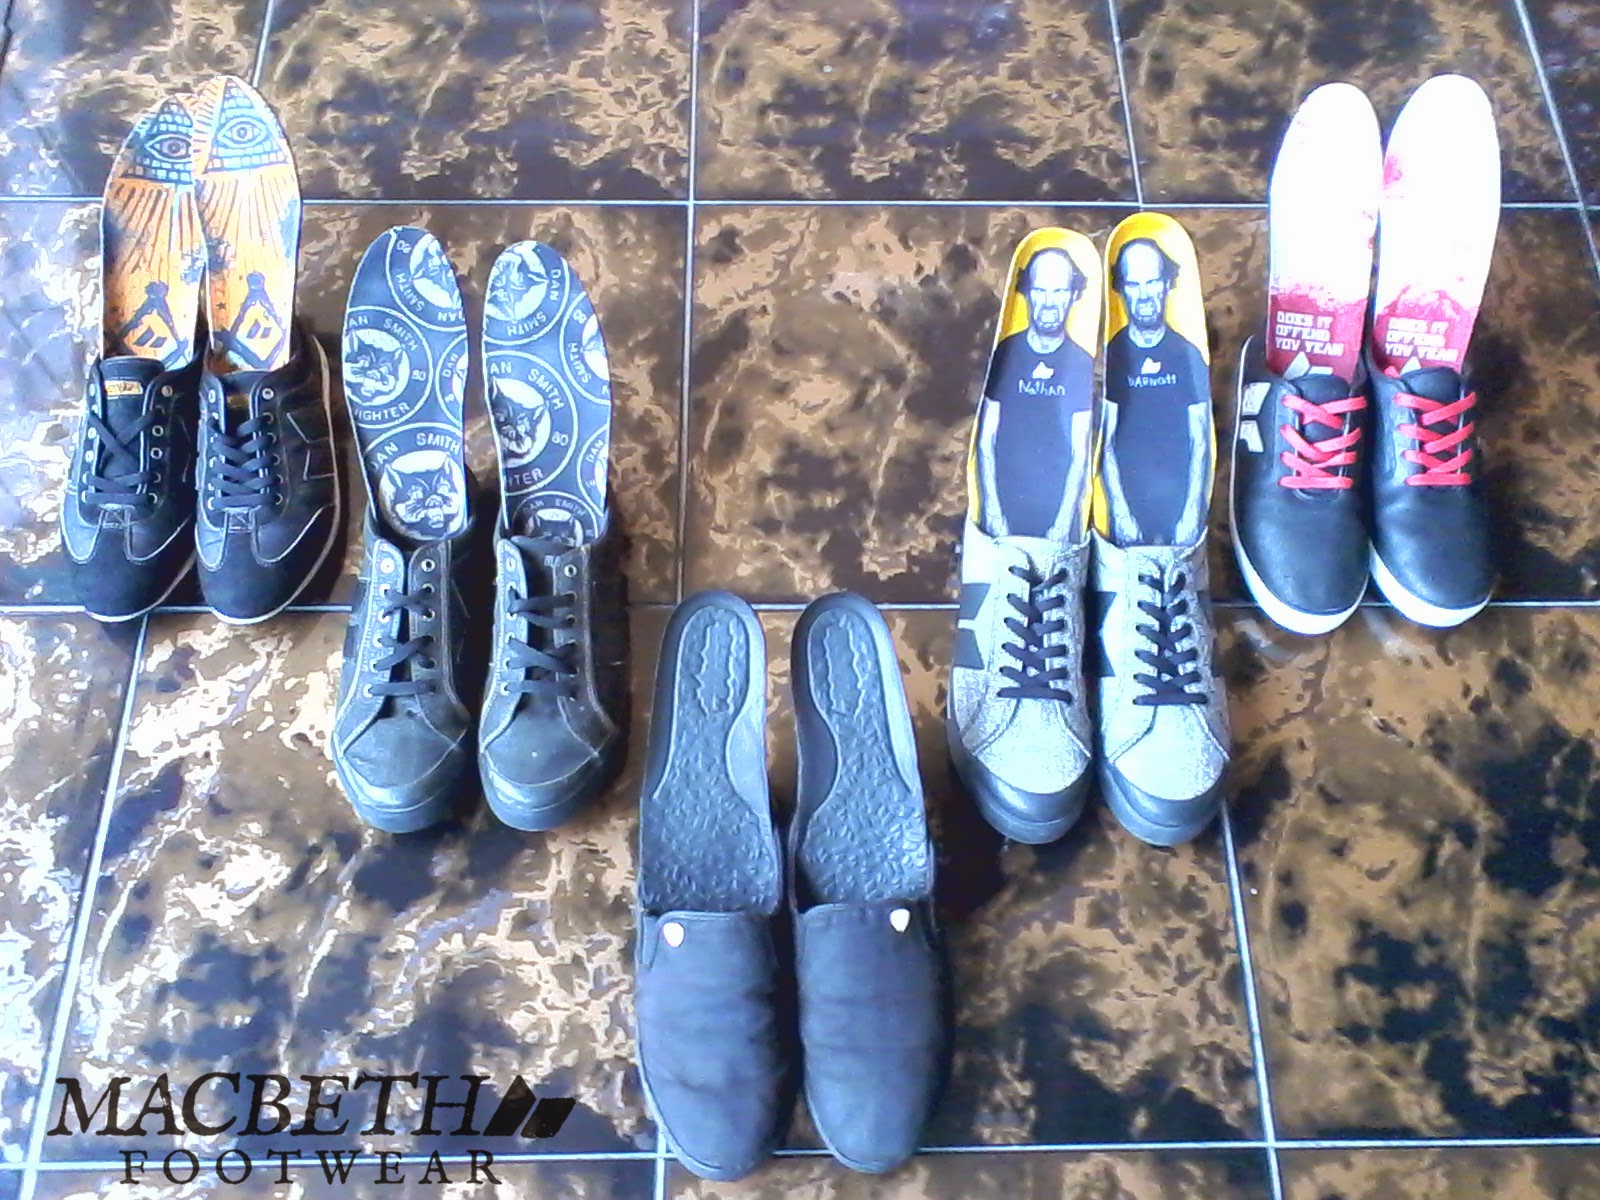 Macbeth Shoes Indonesia Store